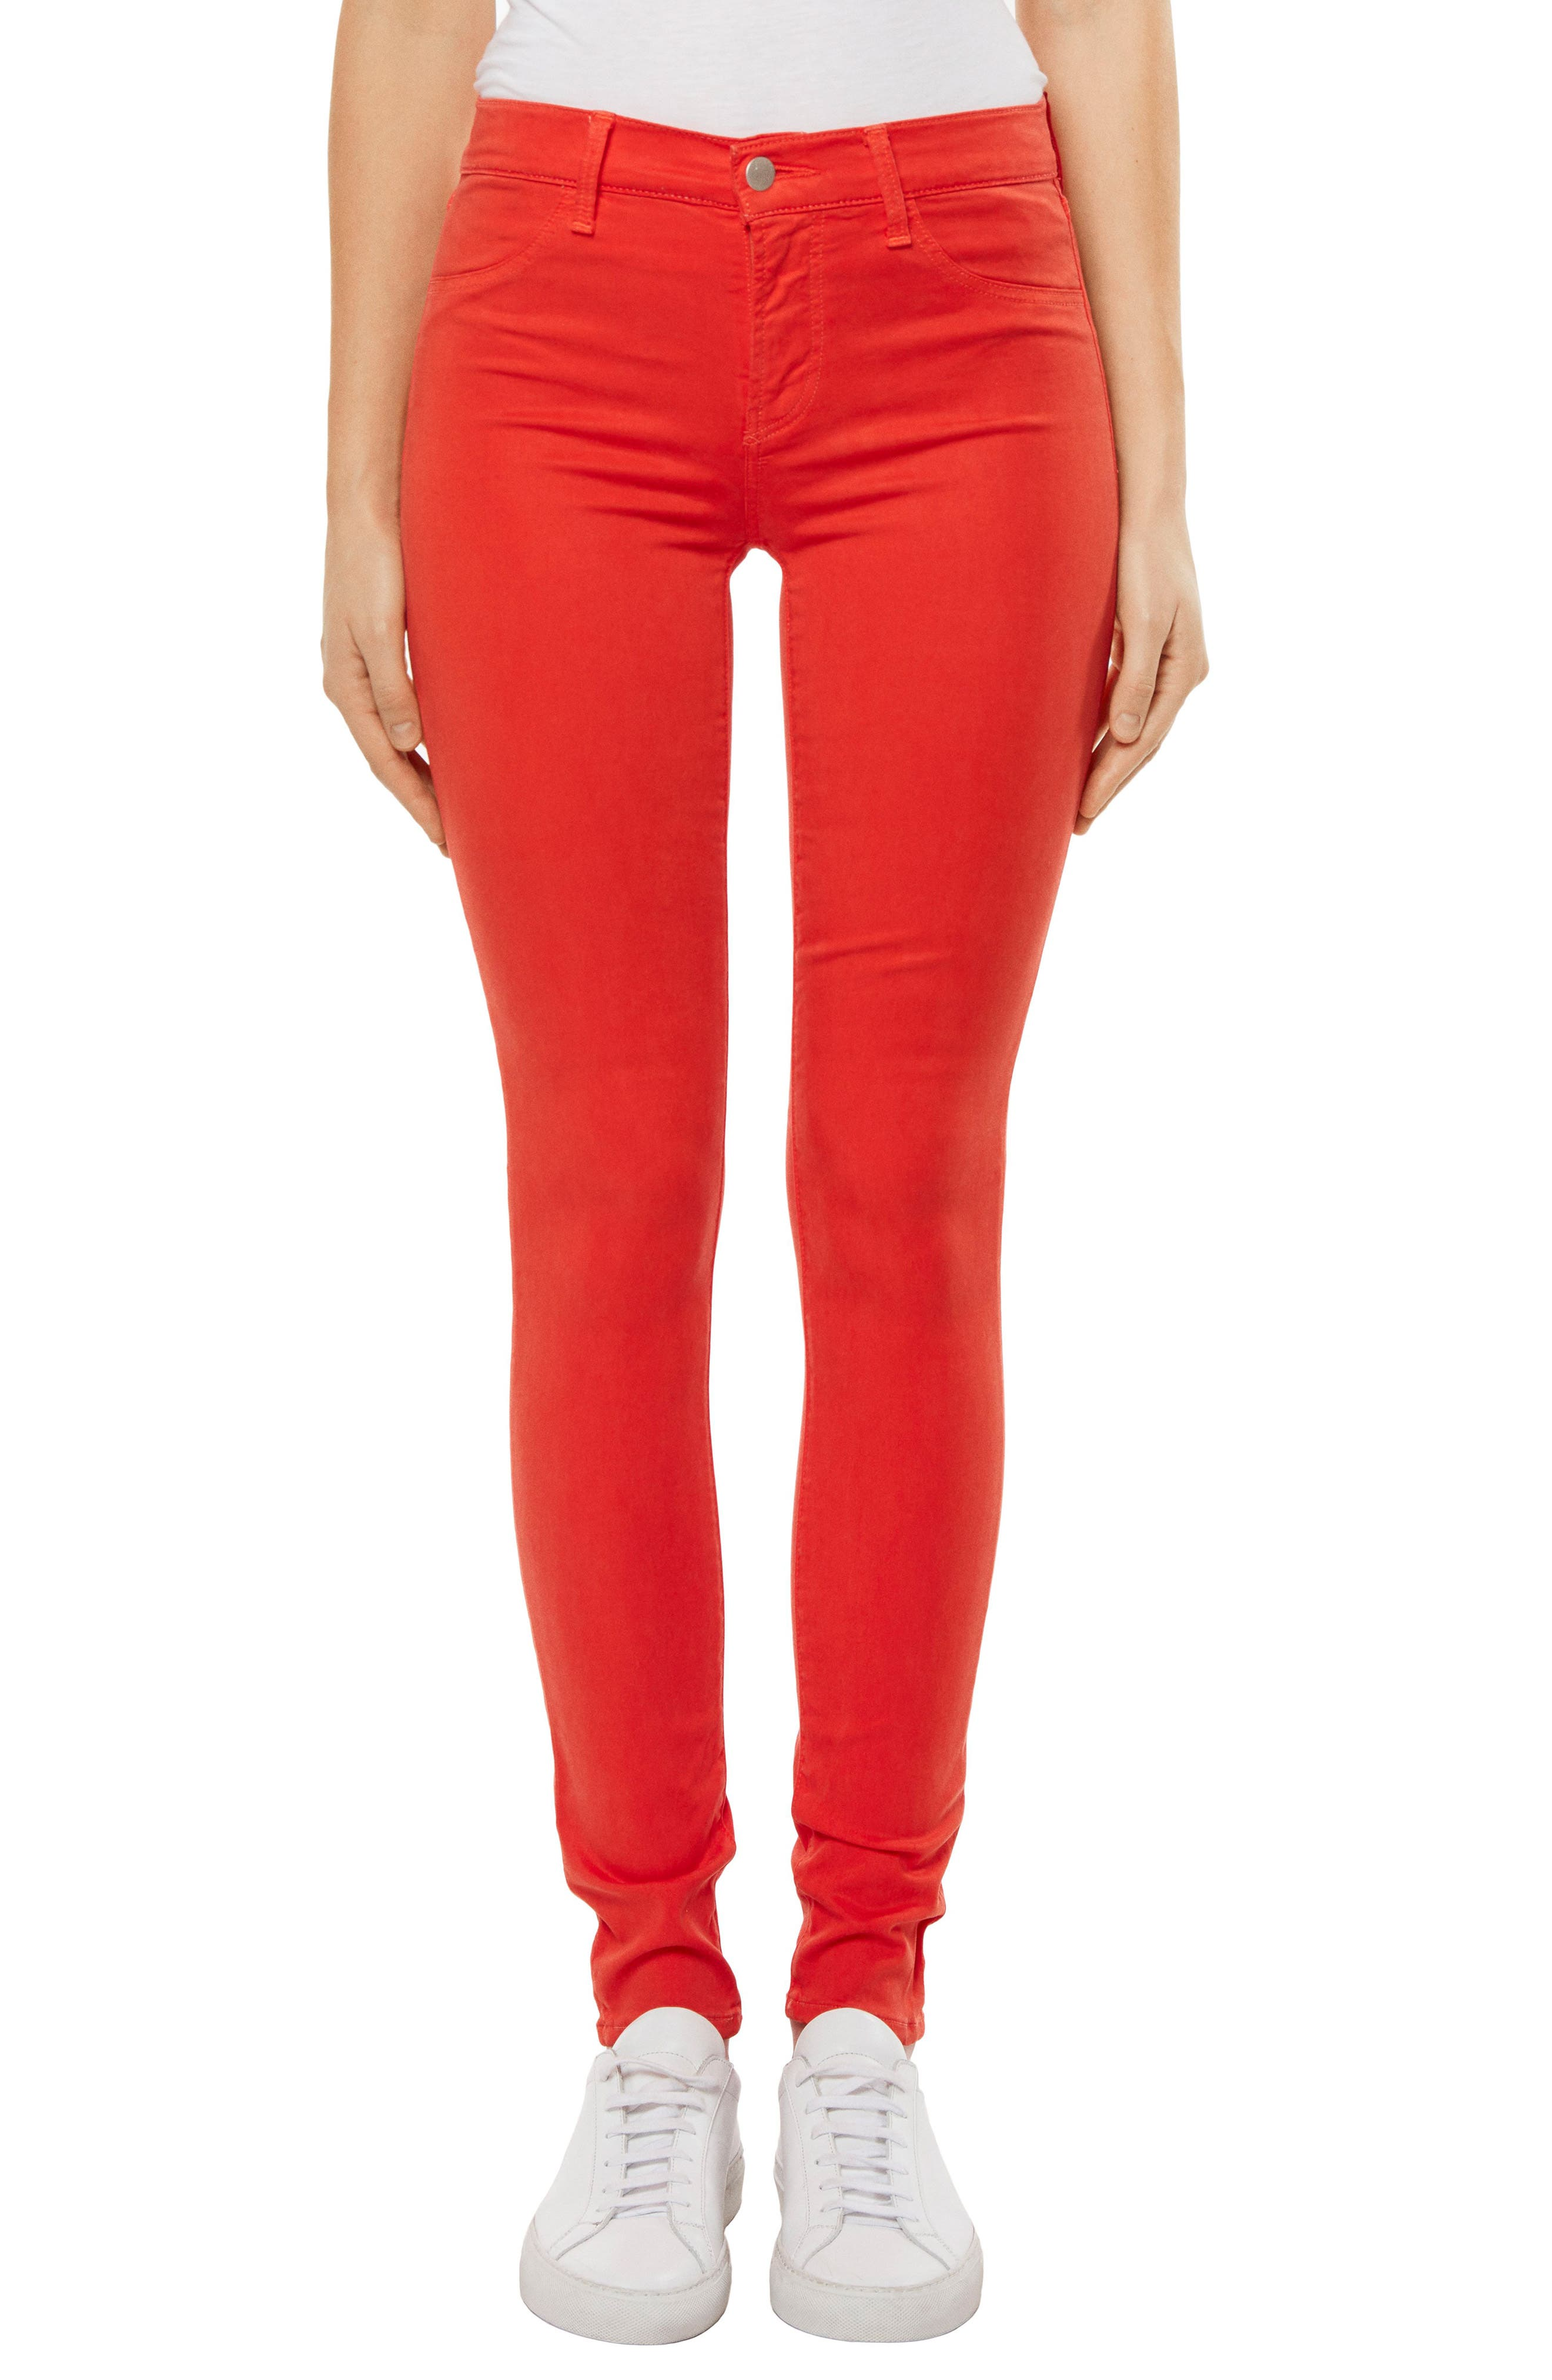 485 Mid Rise Skinny Jeans,                             Main thumbnail 1, color,                             Bright Coral